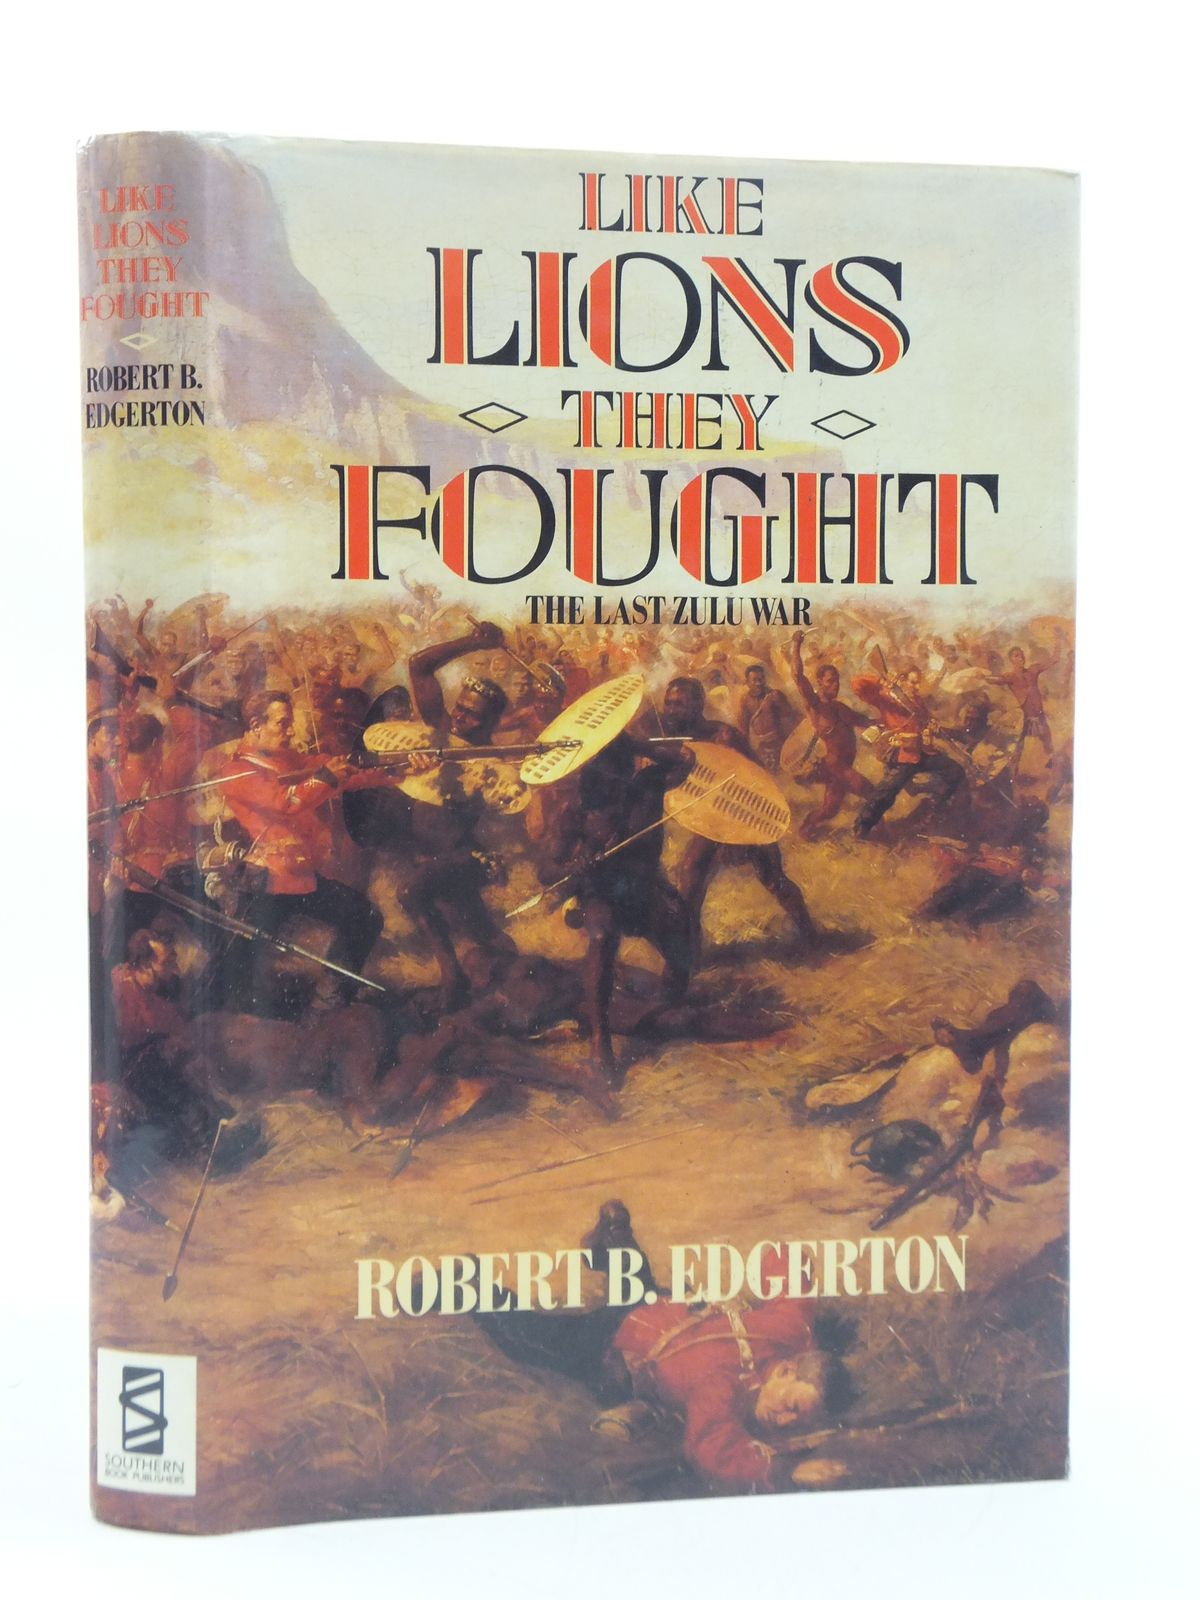 Photo of LIKE LIONS THEY FOUGHT written by Edgerton, Robert B. published by Southern Book Publishers (STOCK CODE: 1605330)  for sale by Stella & Rose's Books